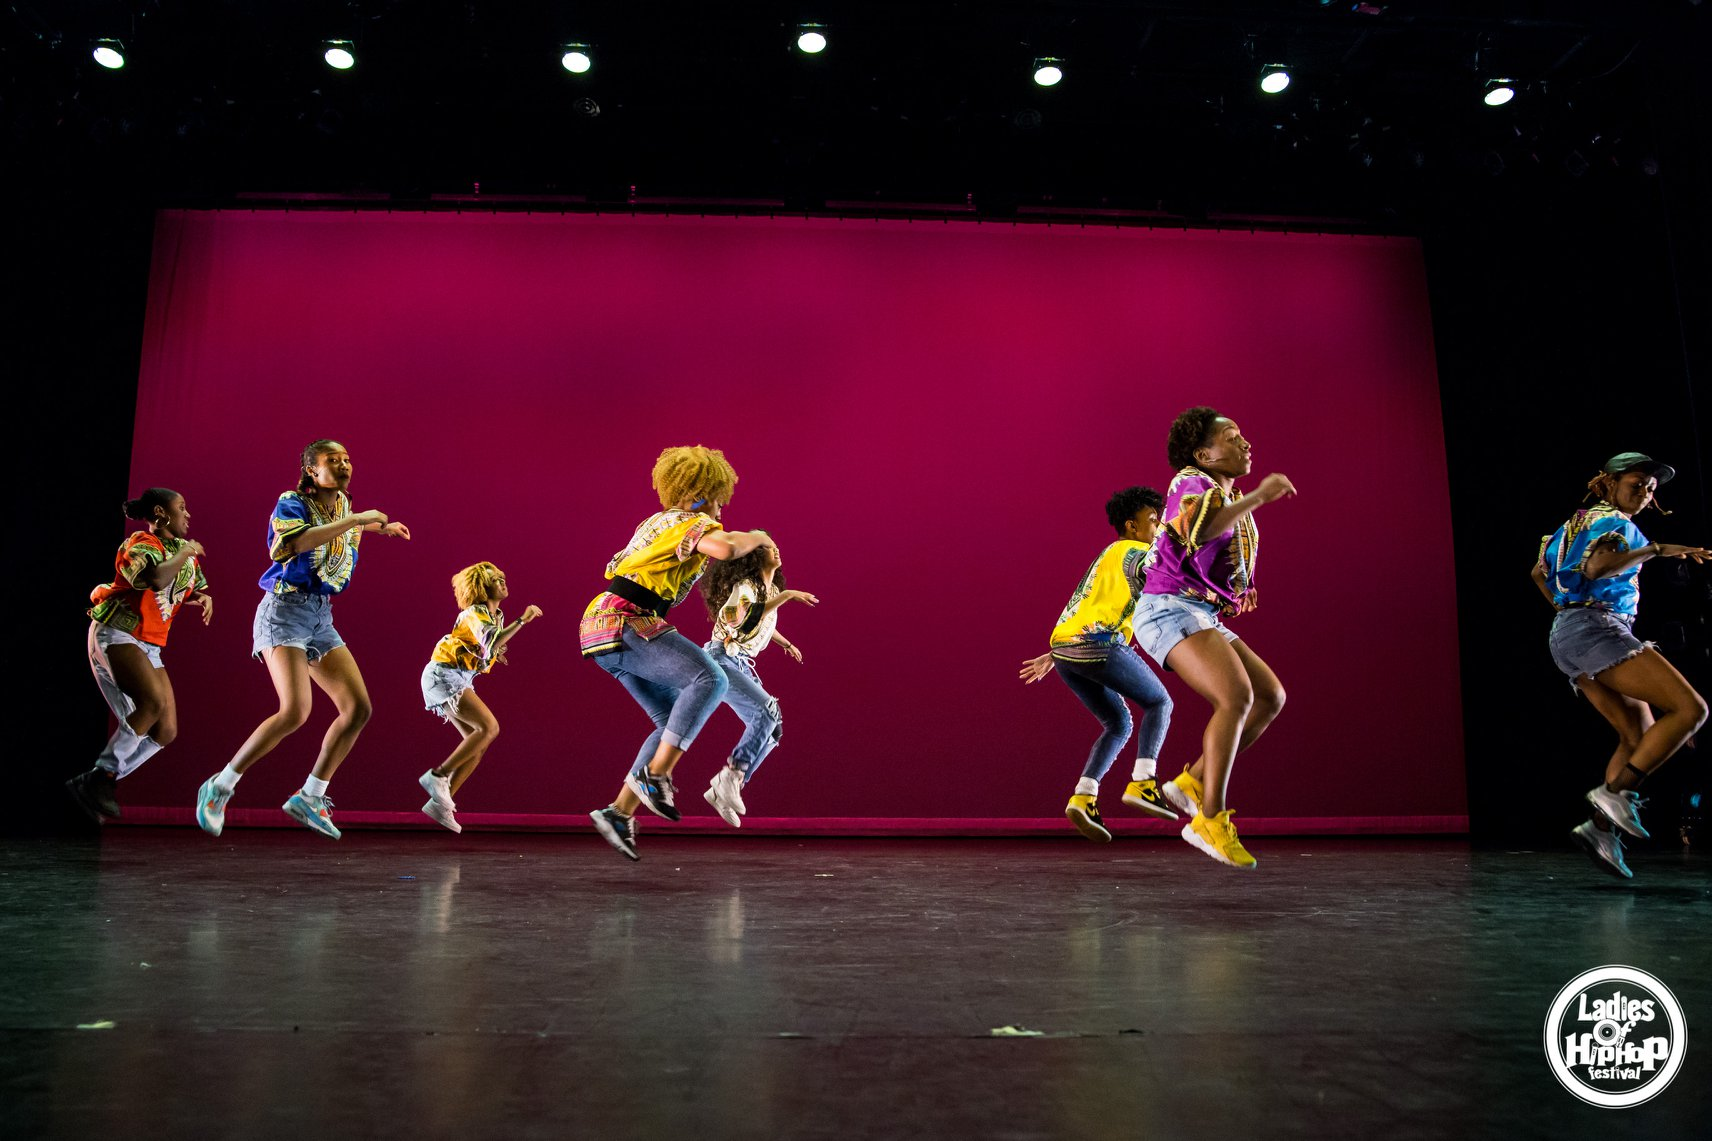 group of people dancing and jumping in air in unison